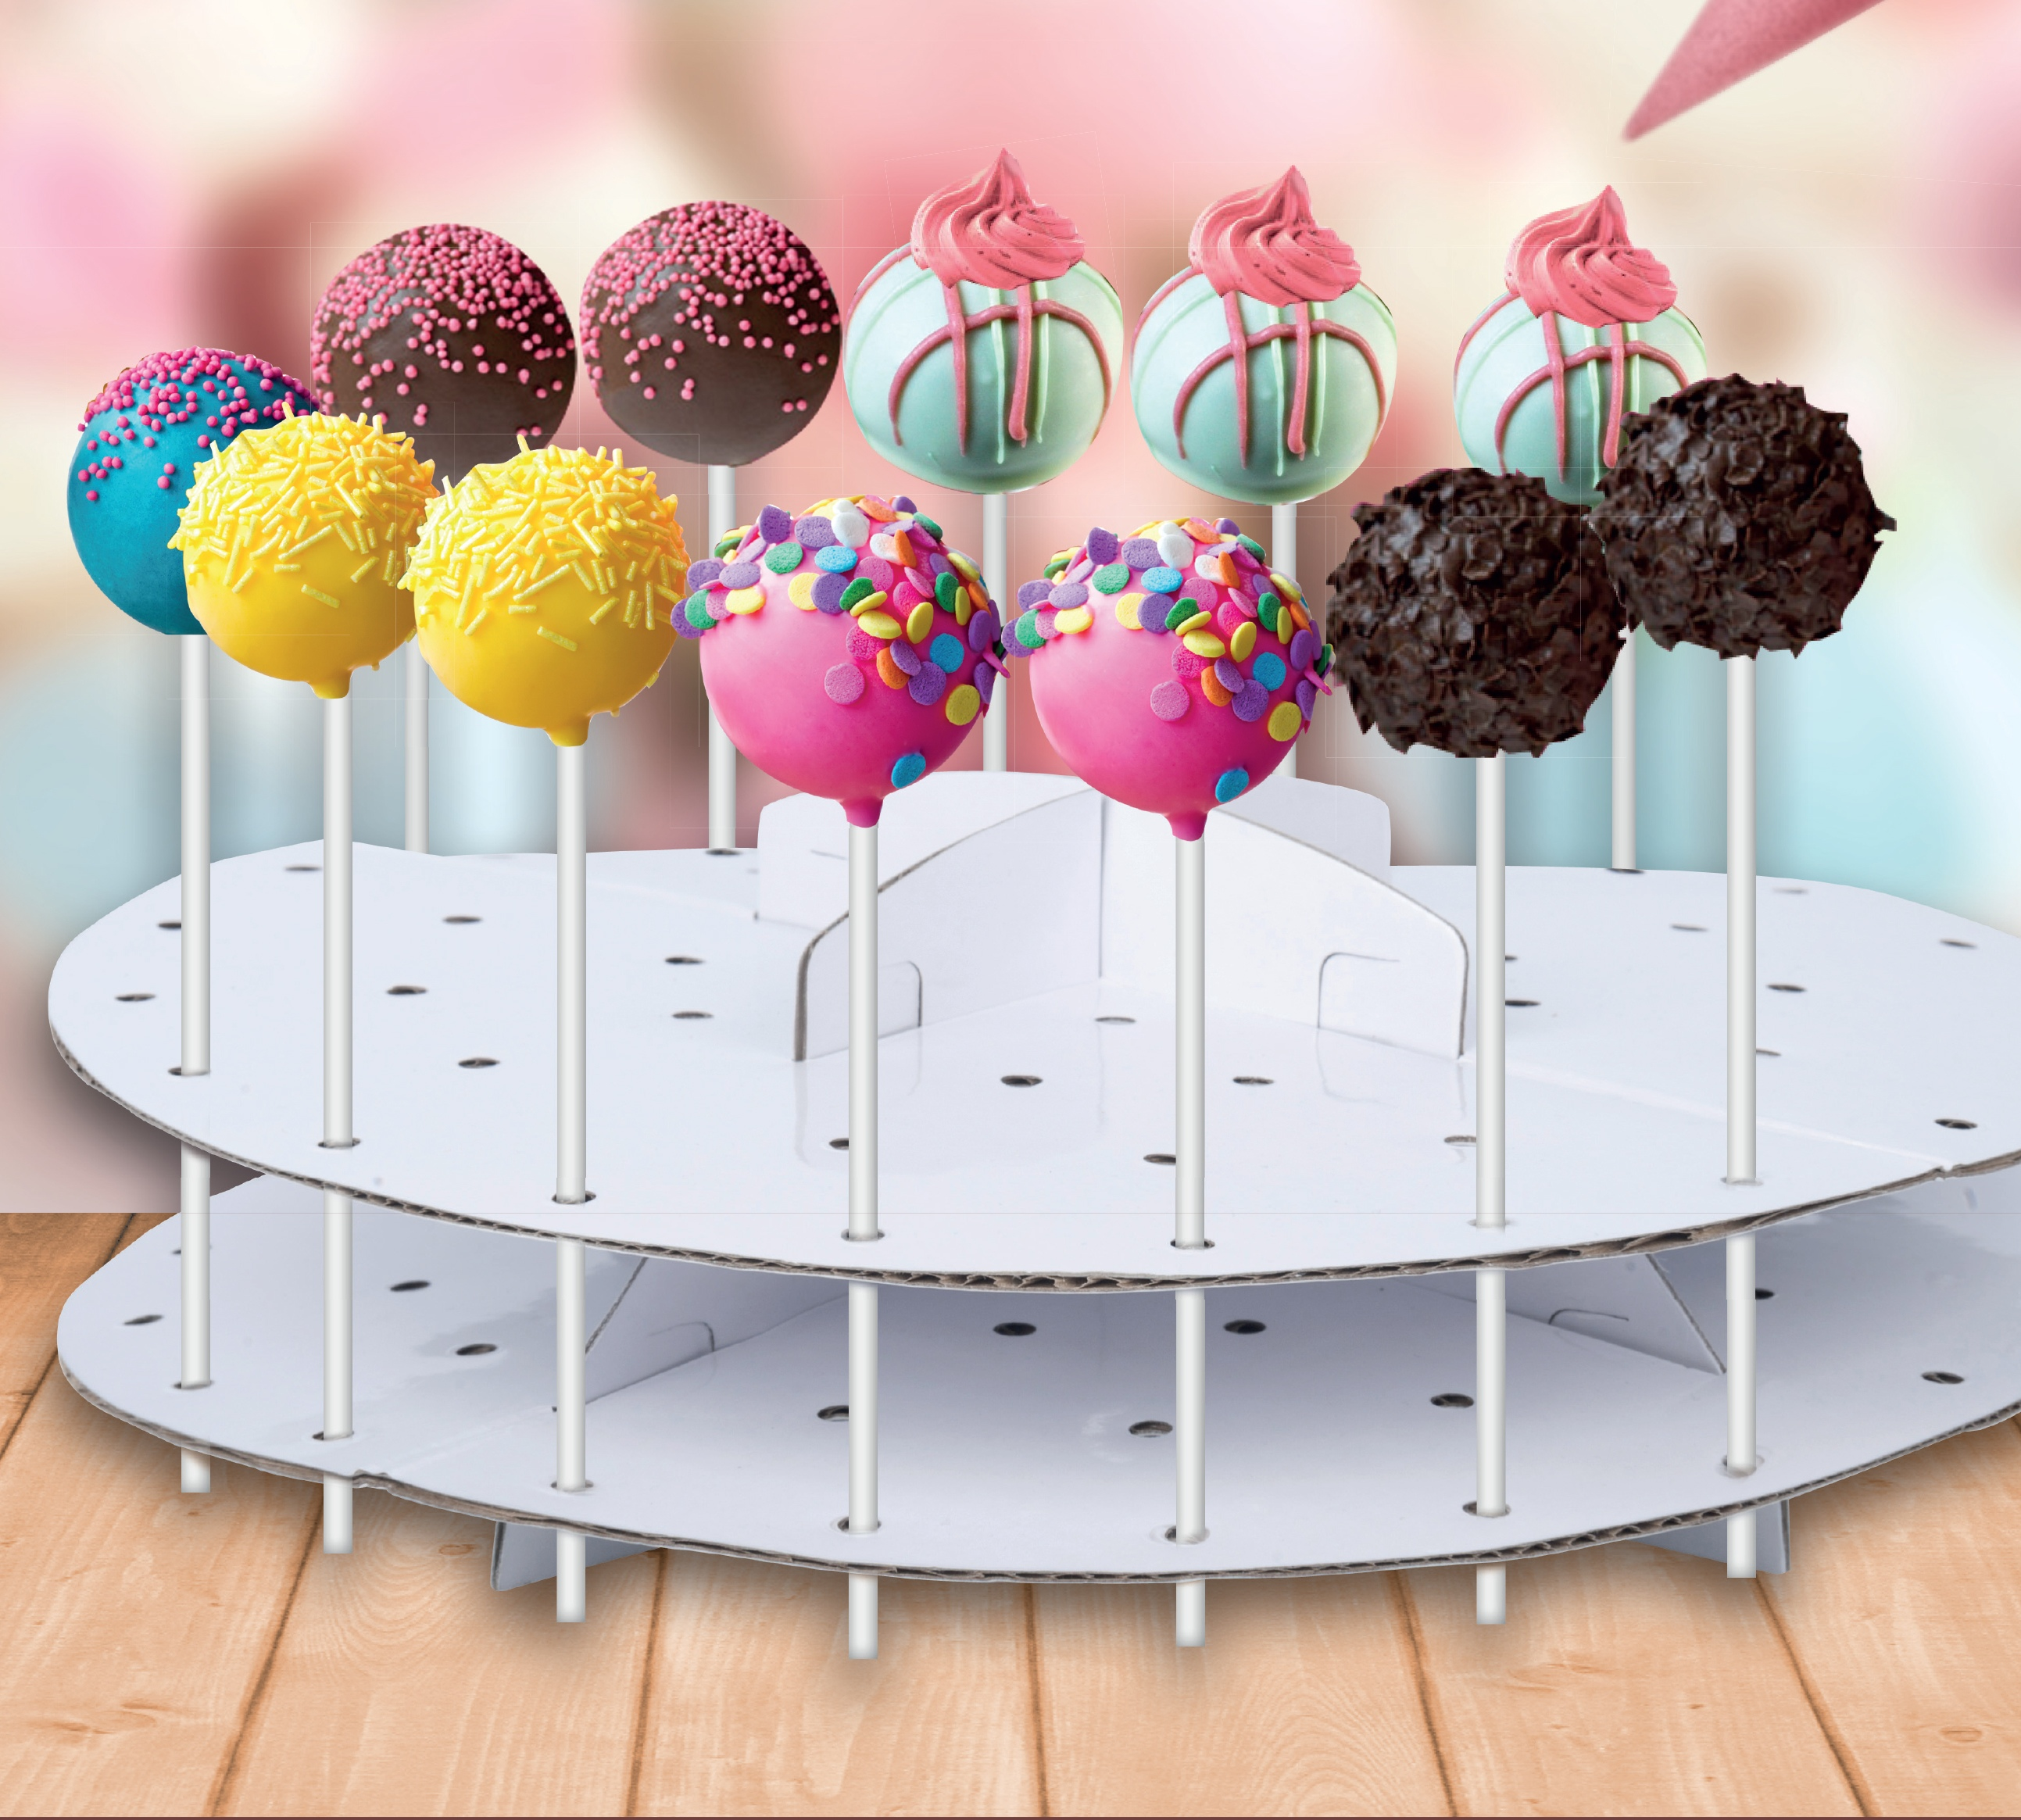 Cake Pop Tower Display